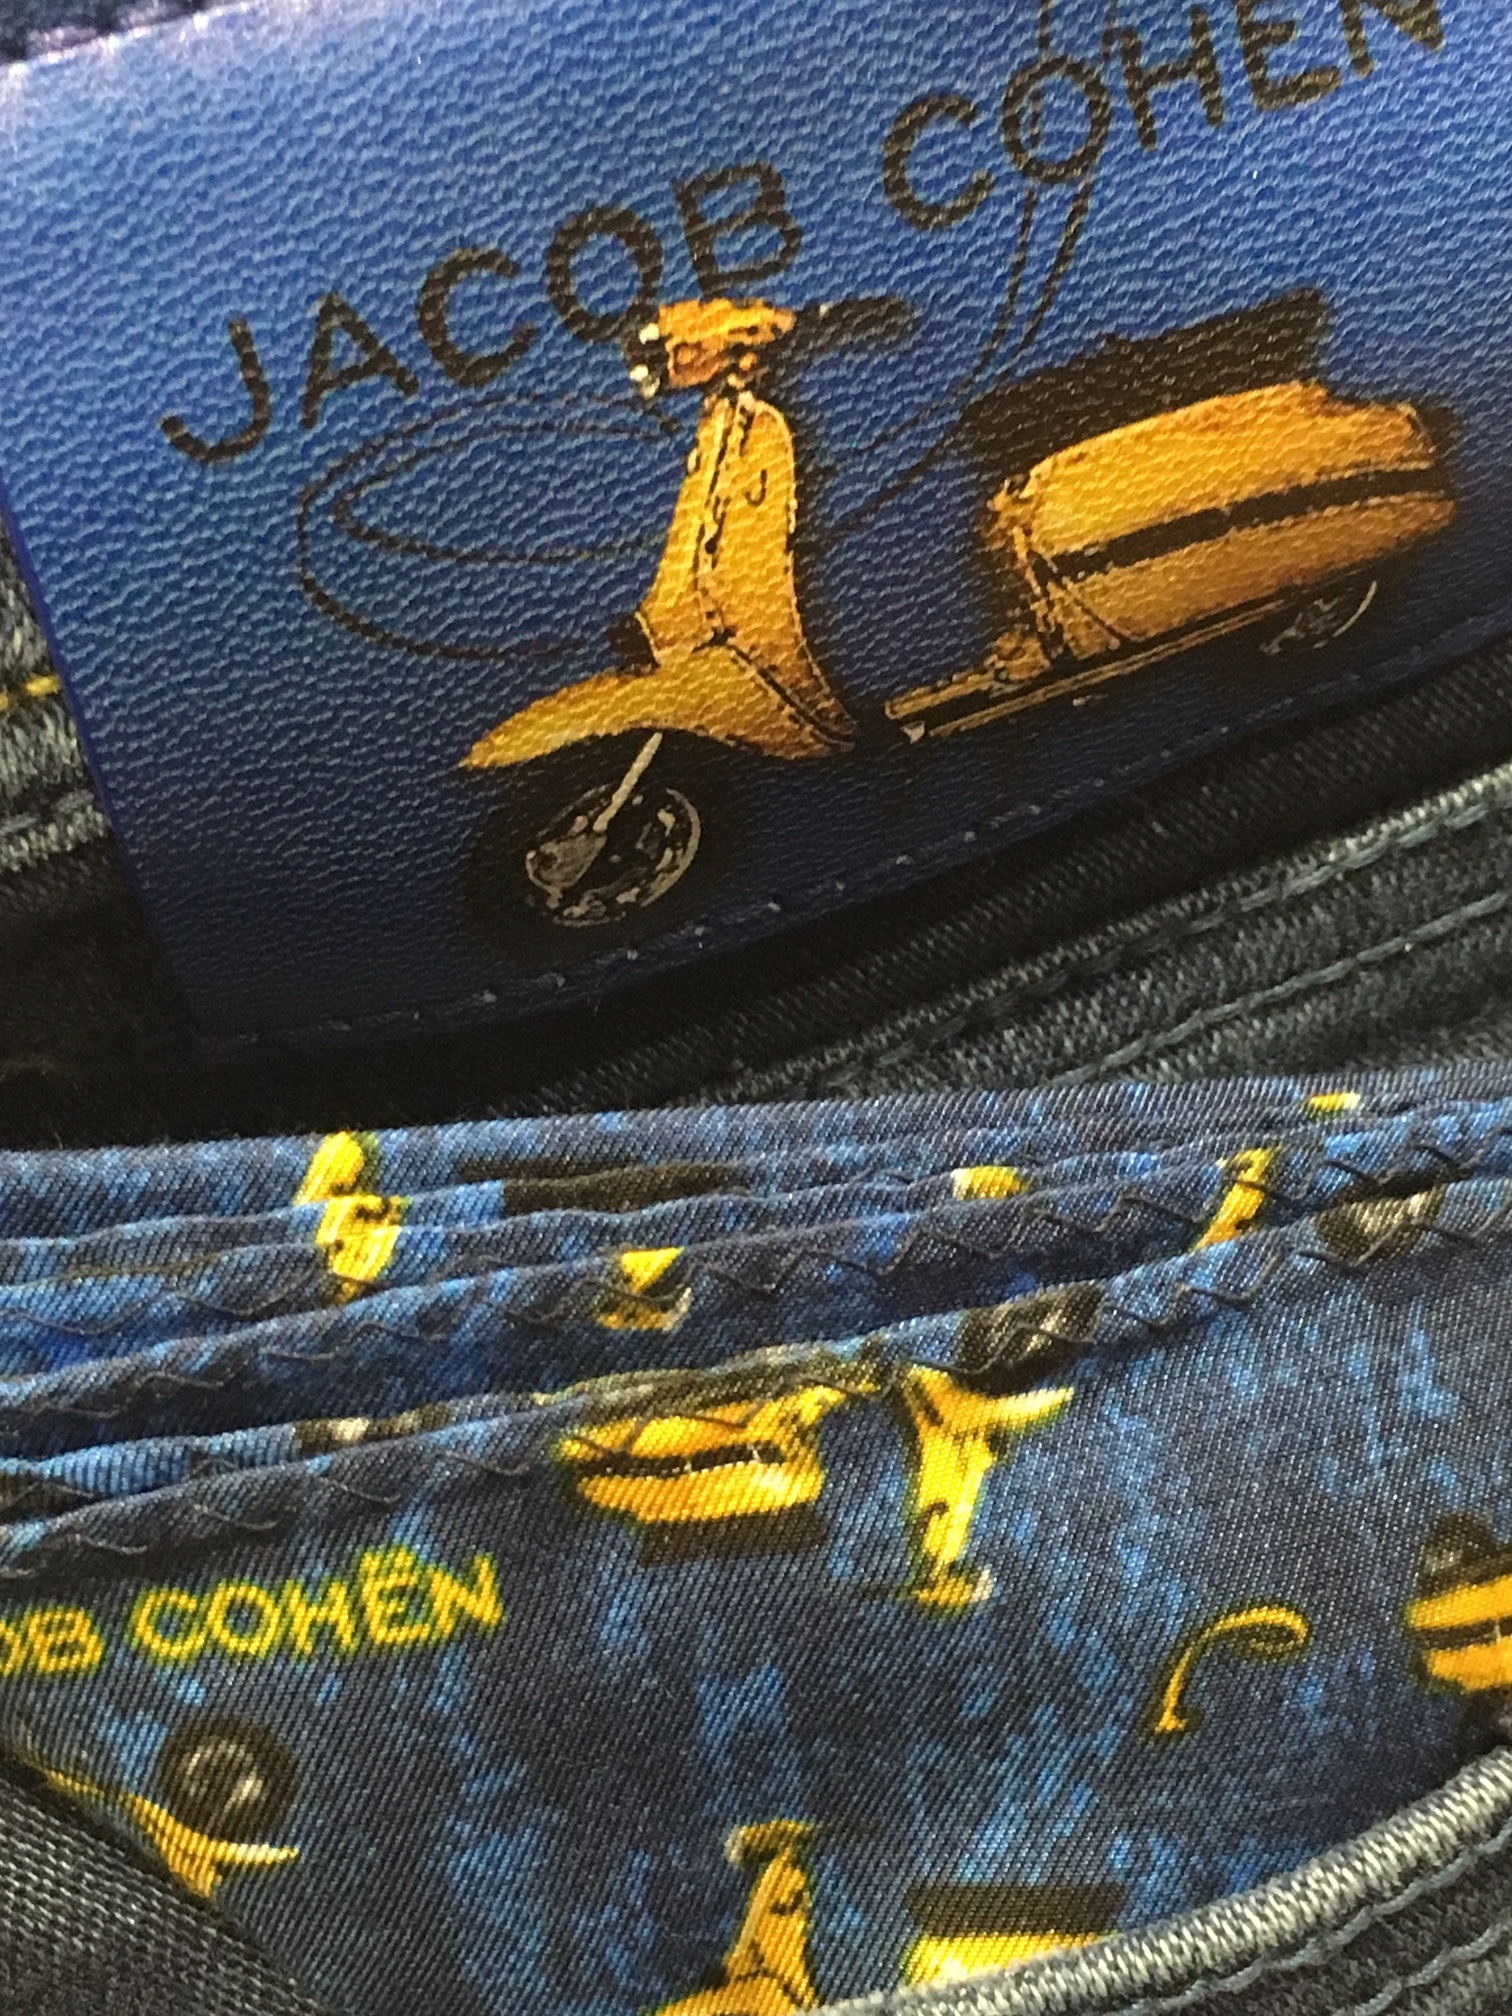 7db43cf2fa57d We have a limited number of Jacob Cohen Special Edition Lambretta Jeans  available in store now, so visit Robinsons today and make sure you snare a  pair ...